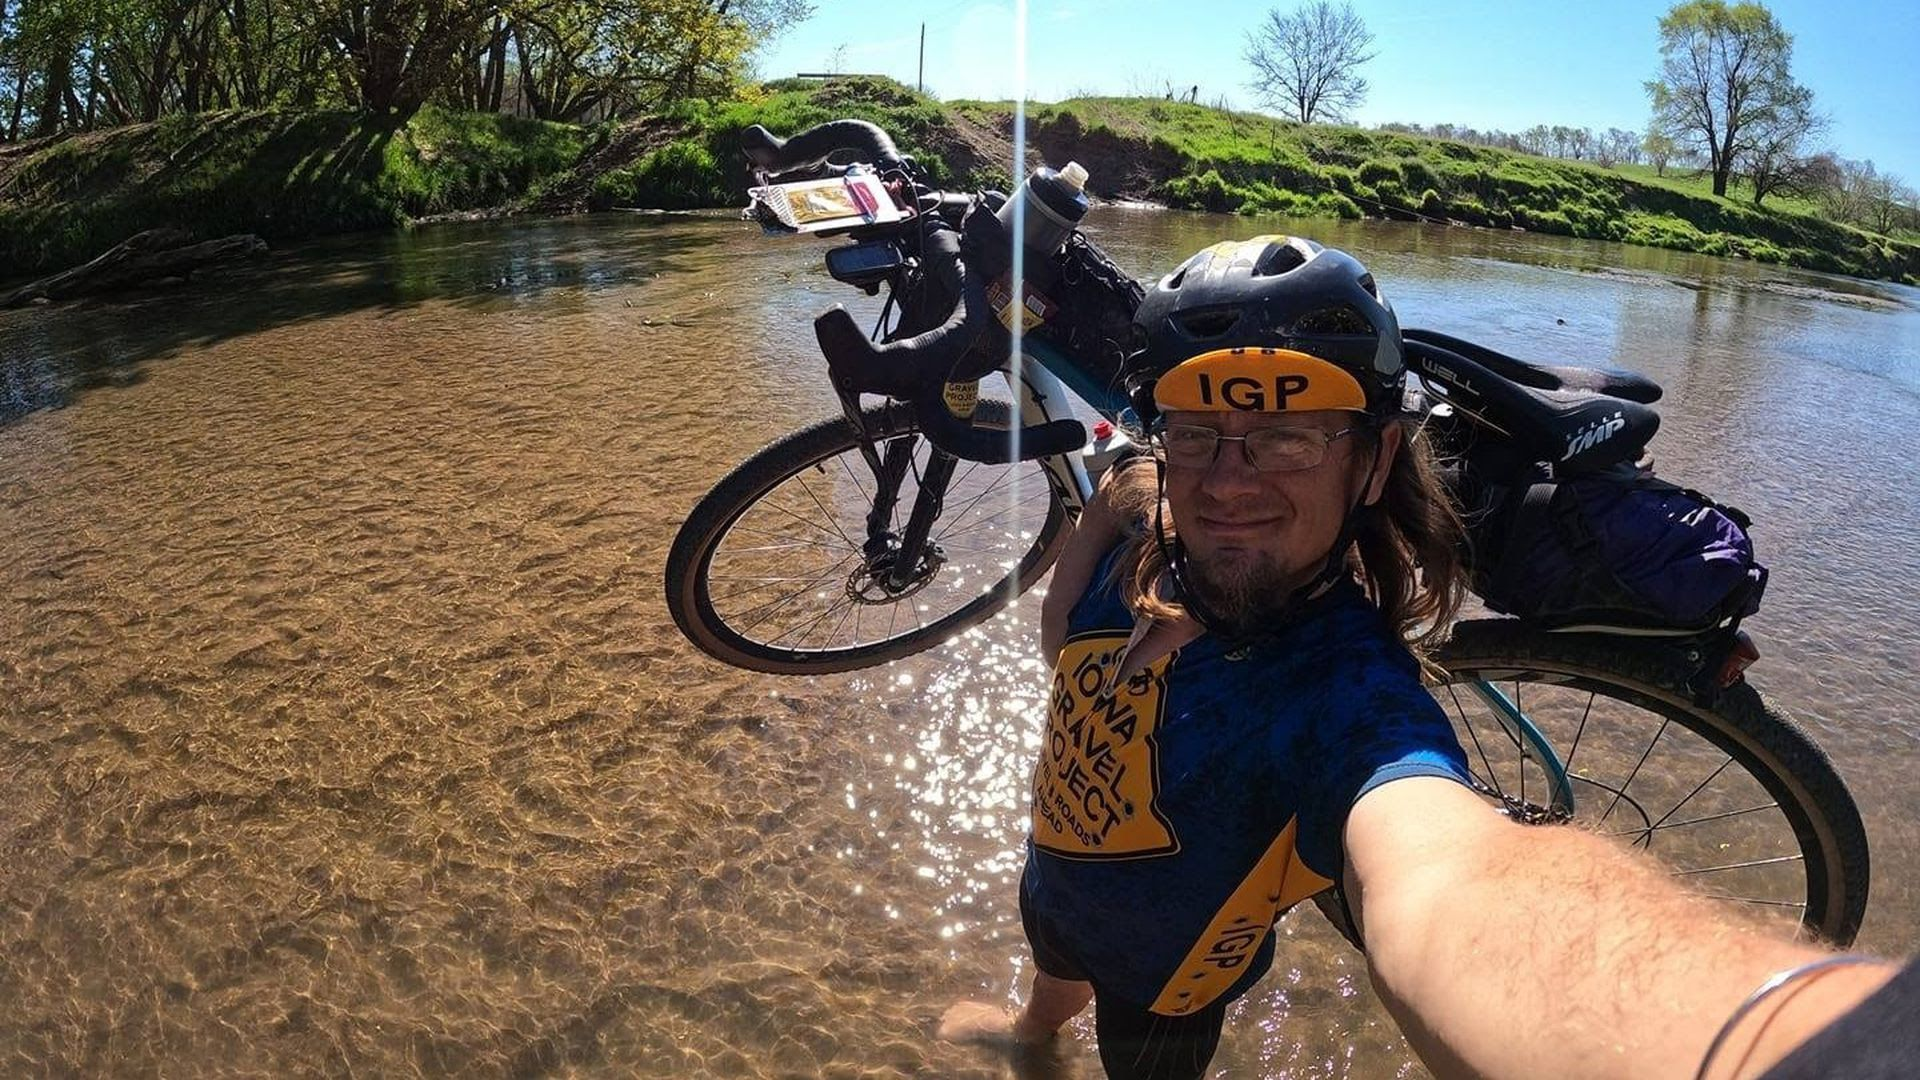 Cole Ledbetter takes a selfie with his bike on his shoulder, while standing in a pond.